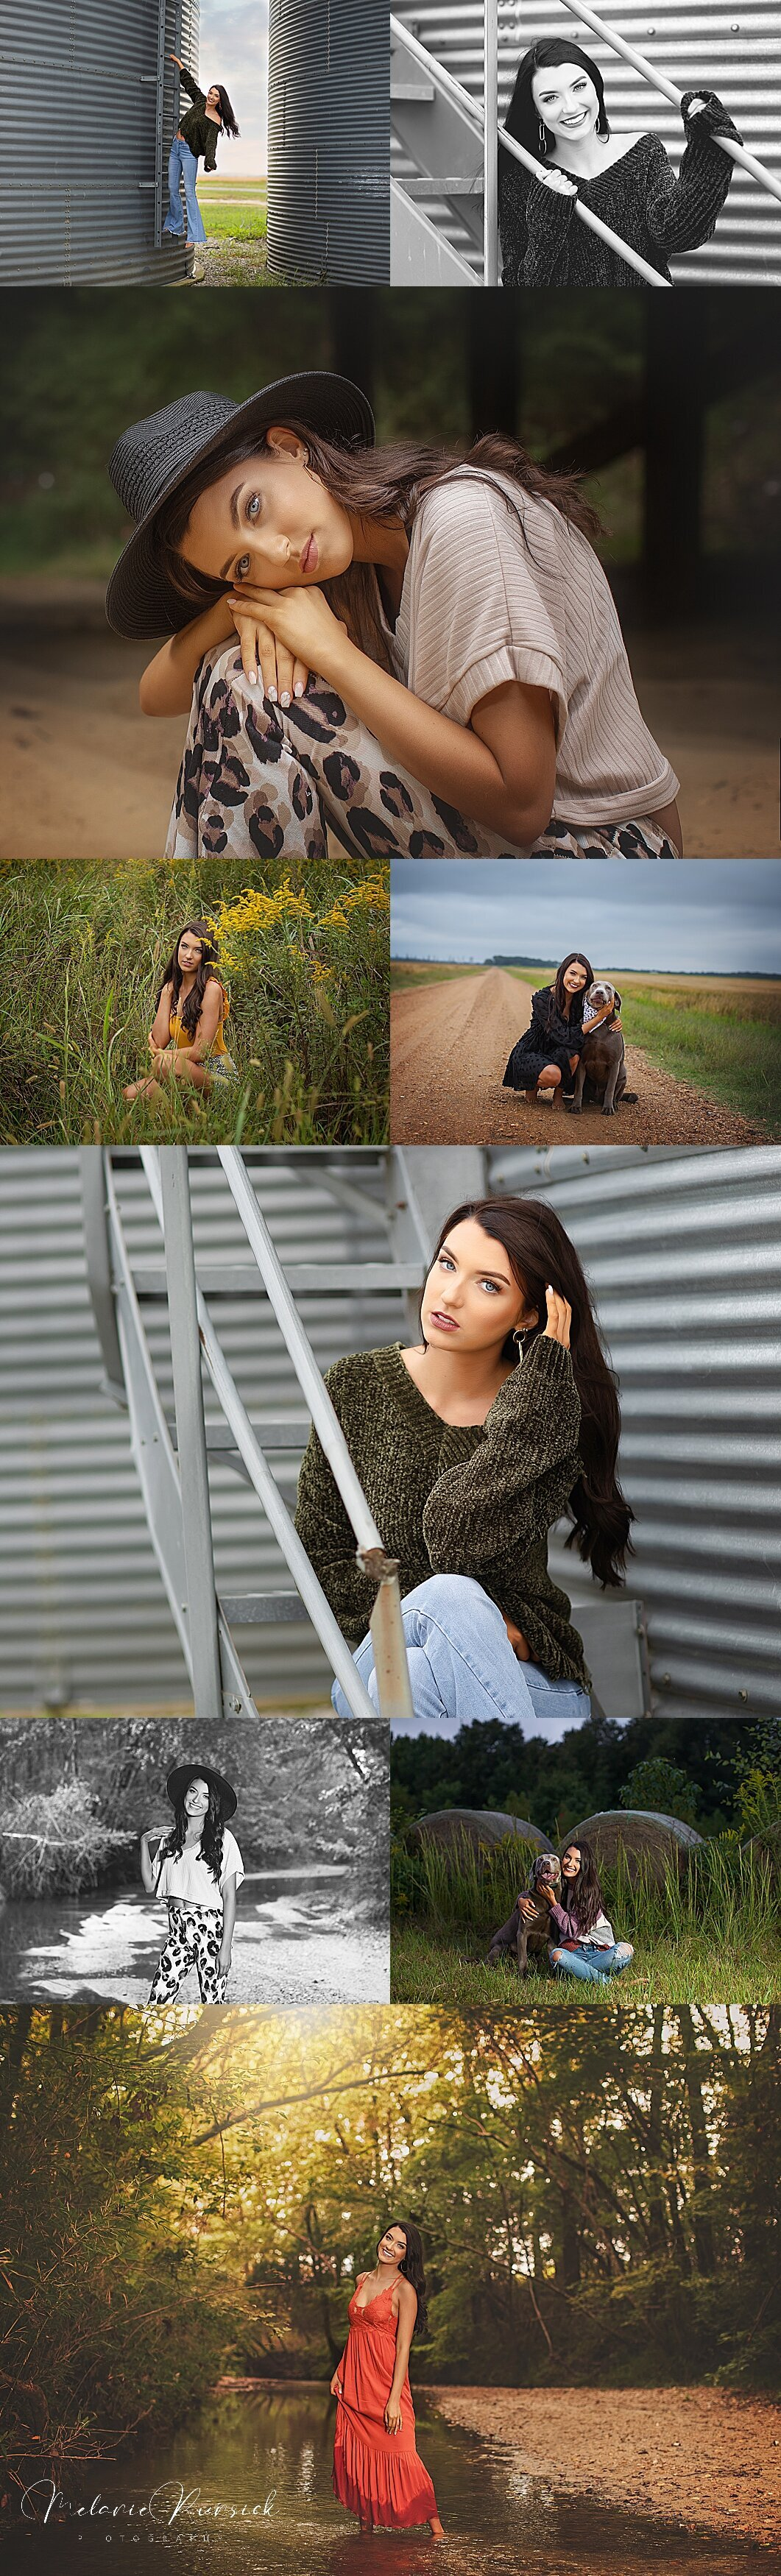 Melanie Runsick Photography Jonesboro Arkansas Senior Photographer_0469